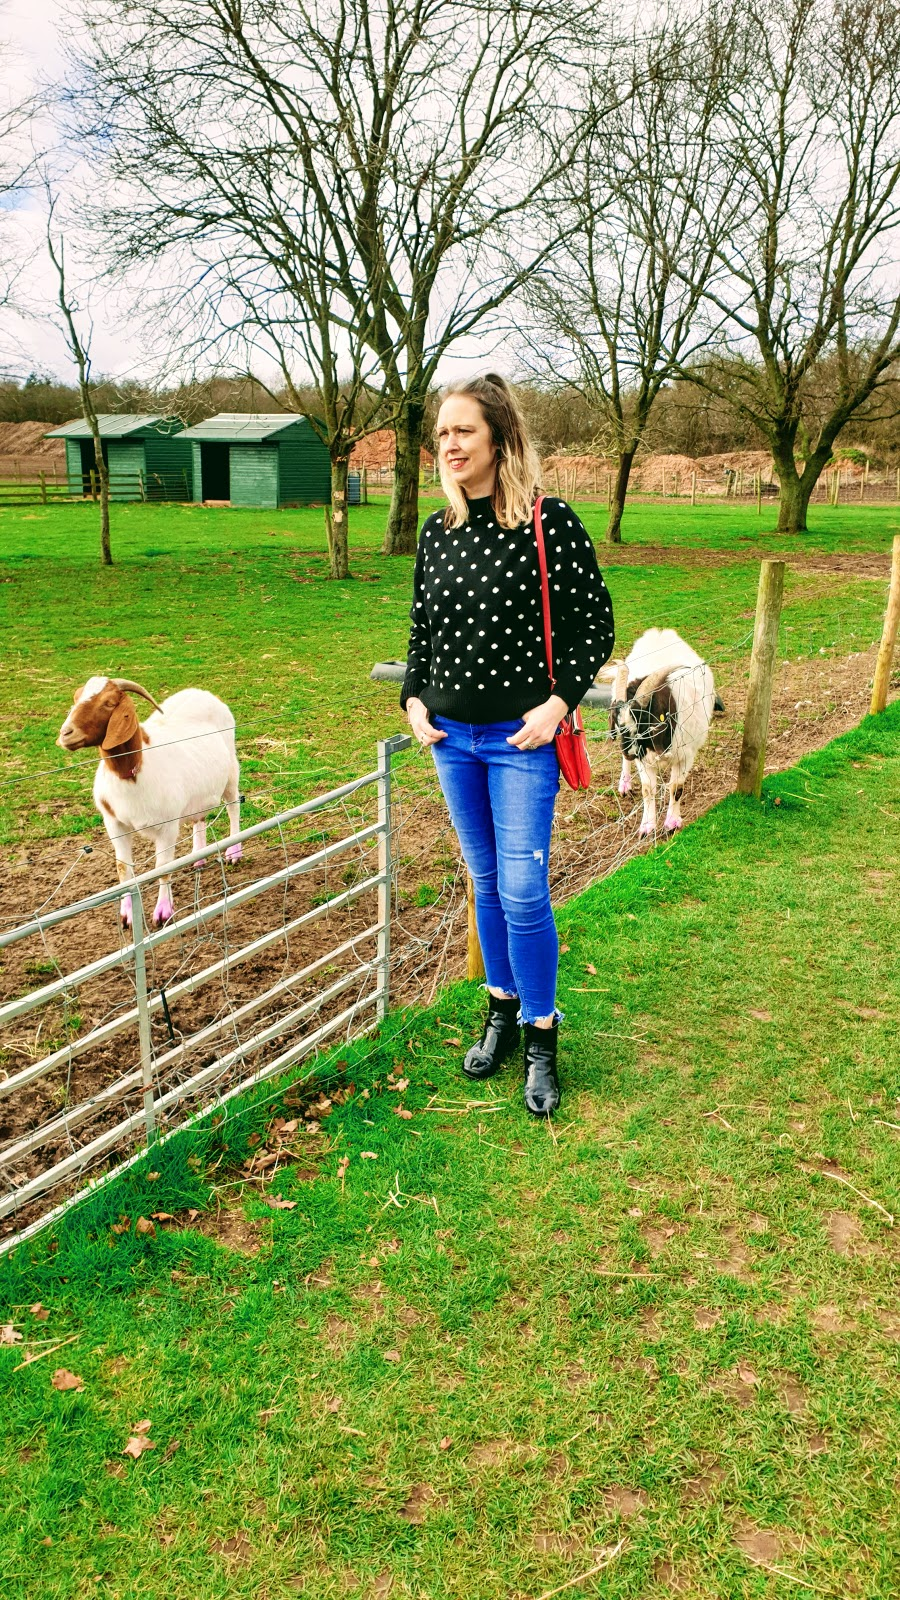 Still Planning Our Trip To The Farm: Over 40 Style Post